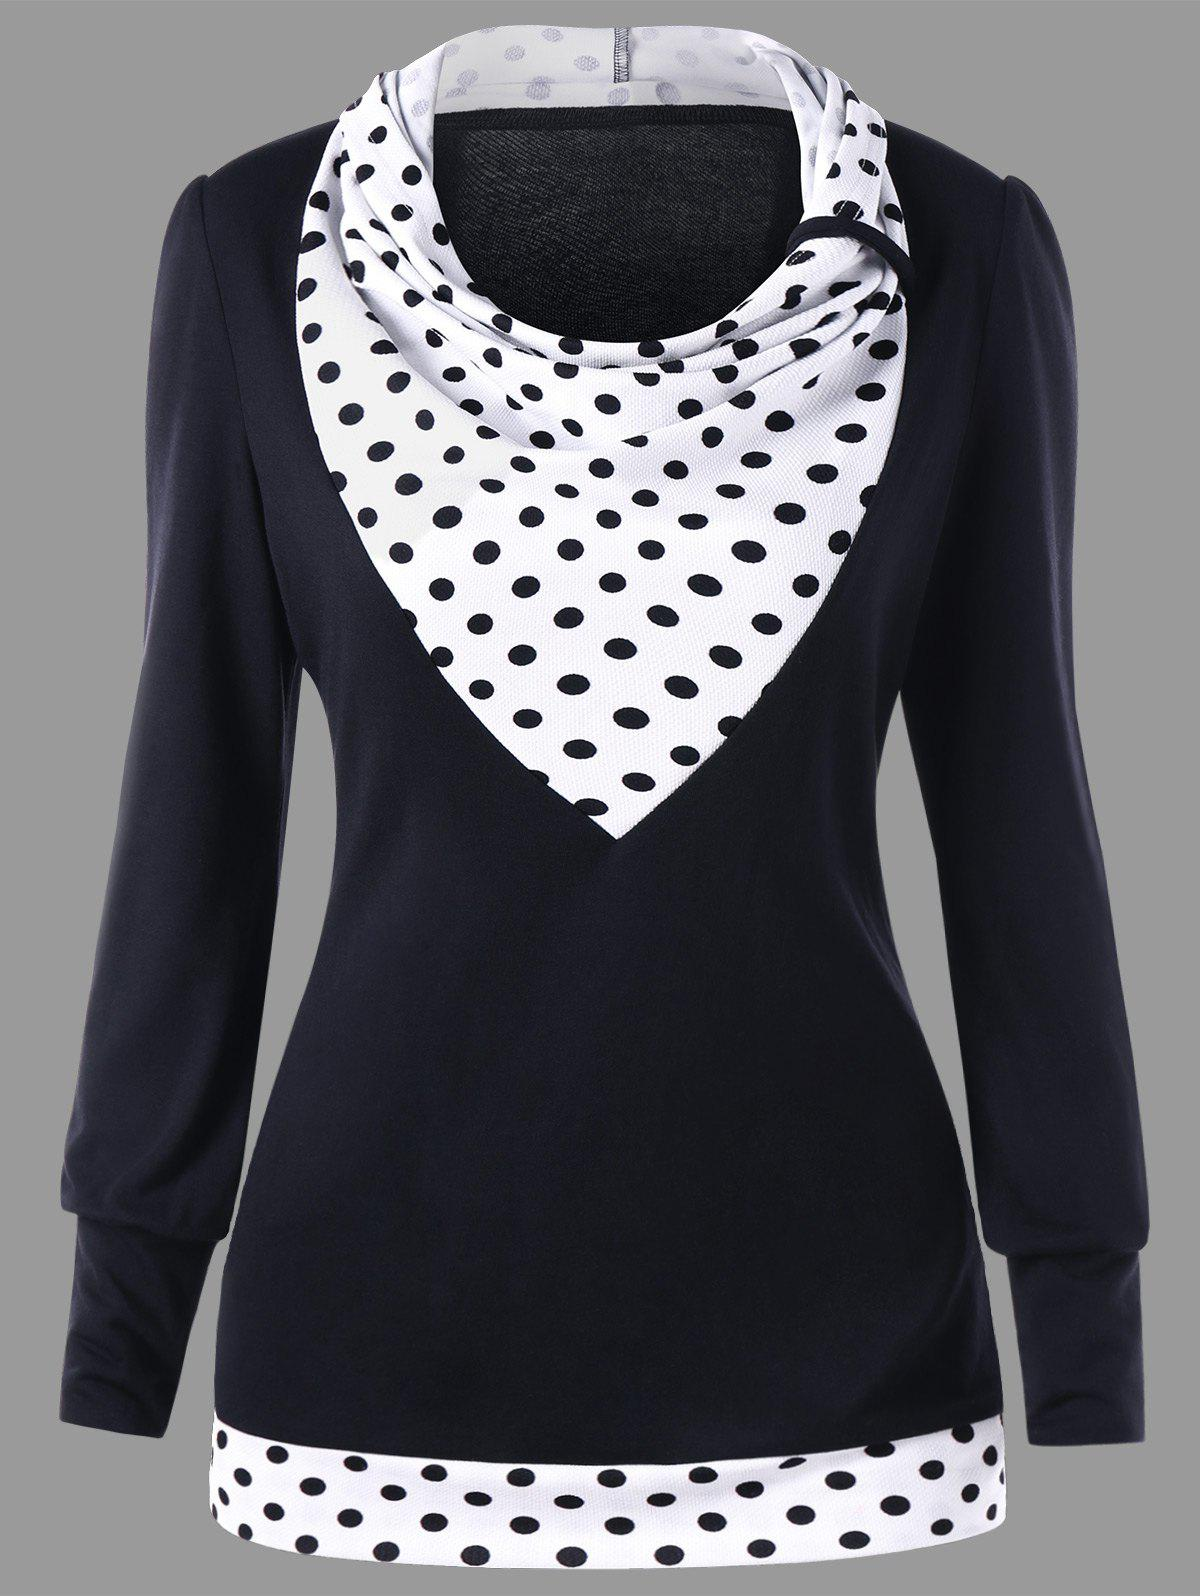 Latest Cowl Neck Polka Dot Pullover Tunic Sweatshirt